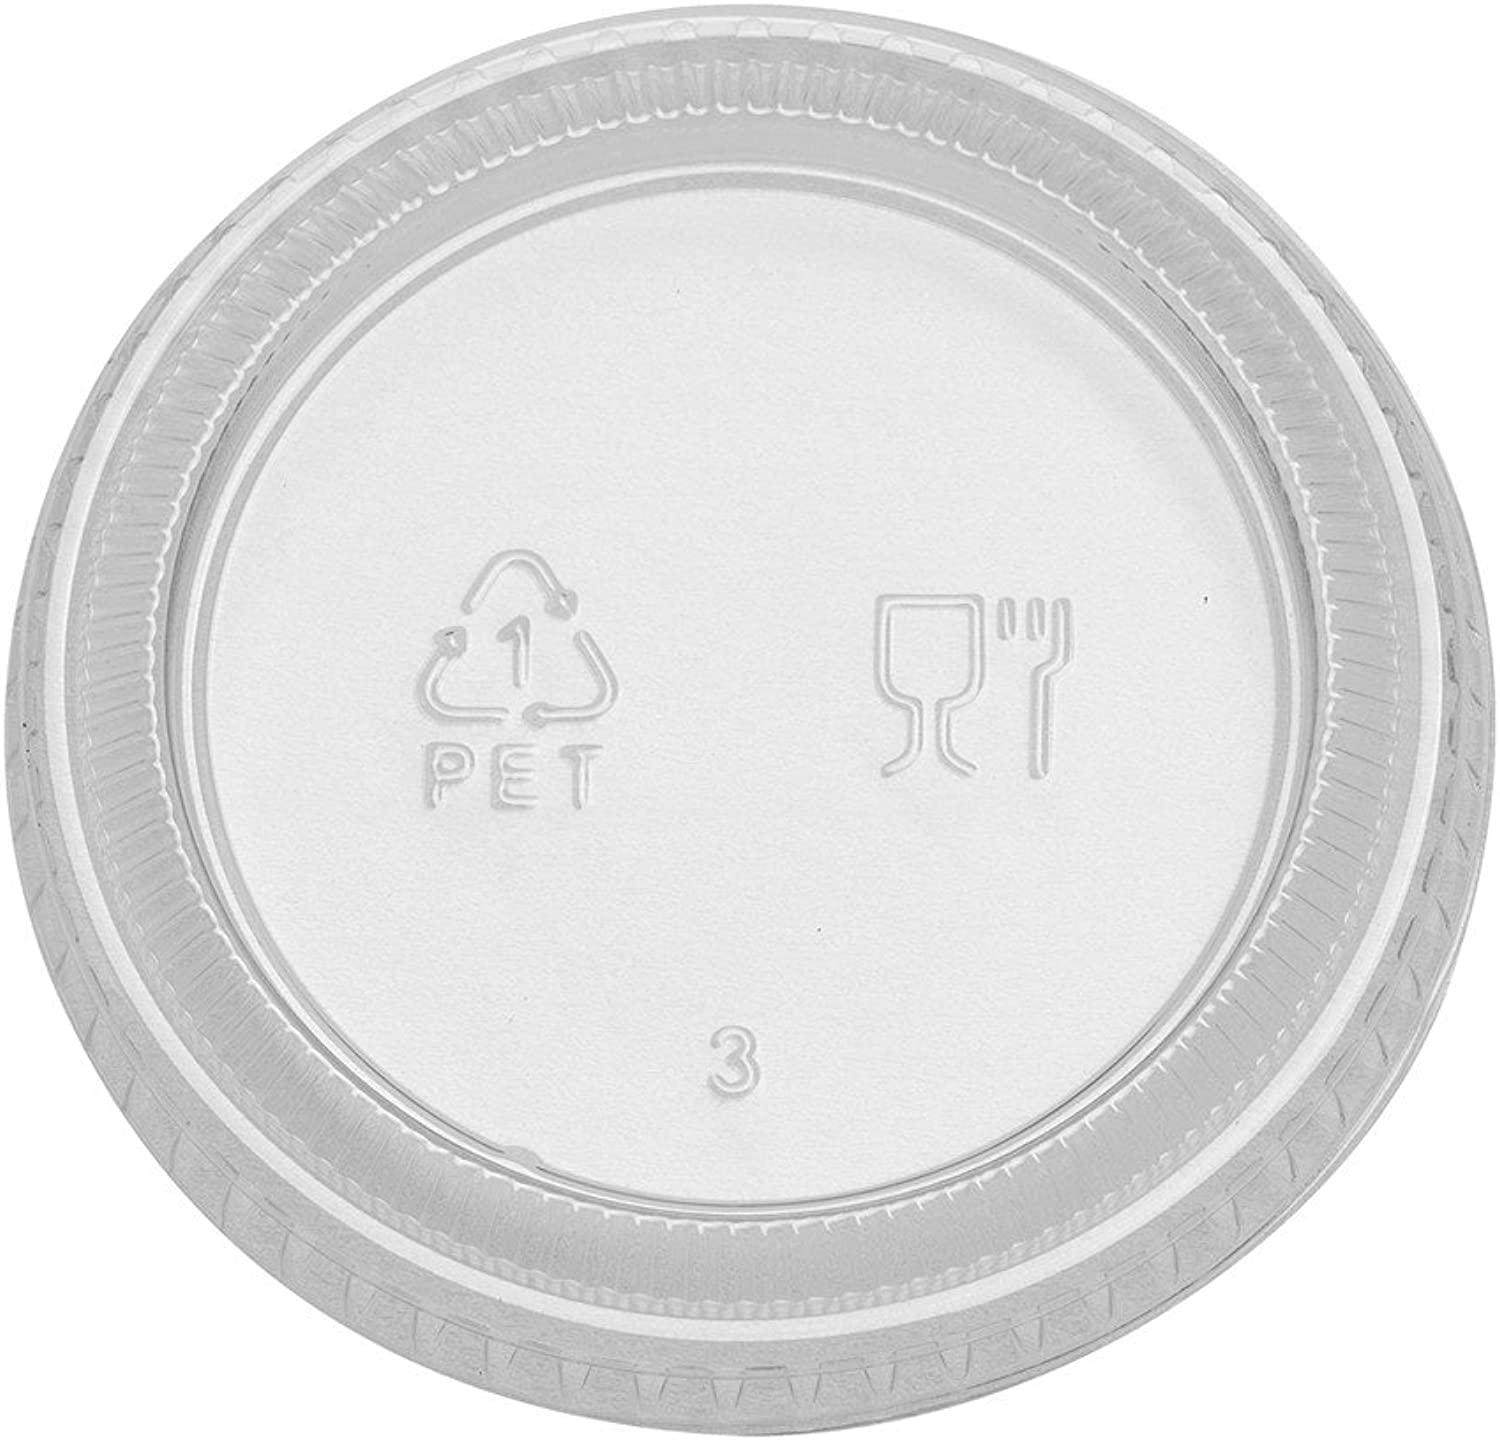 Dixie 1.5 or 2 oz., Plastic Portion Cup Lid by GP PRO (Georgia-Pacific), Clear, PL20CLEAR, 2,400 Count (Case of 12 Sleeves, 200 Lids Per Sleeve)